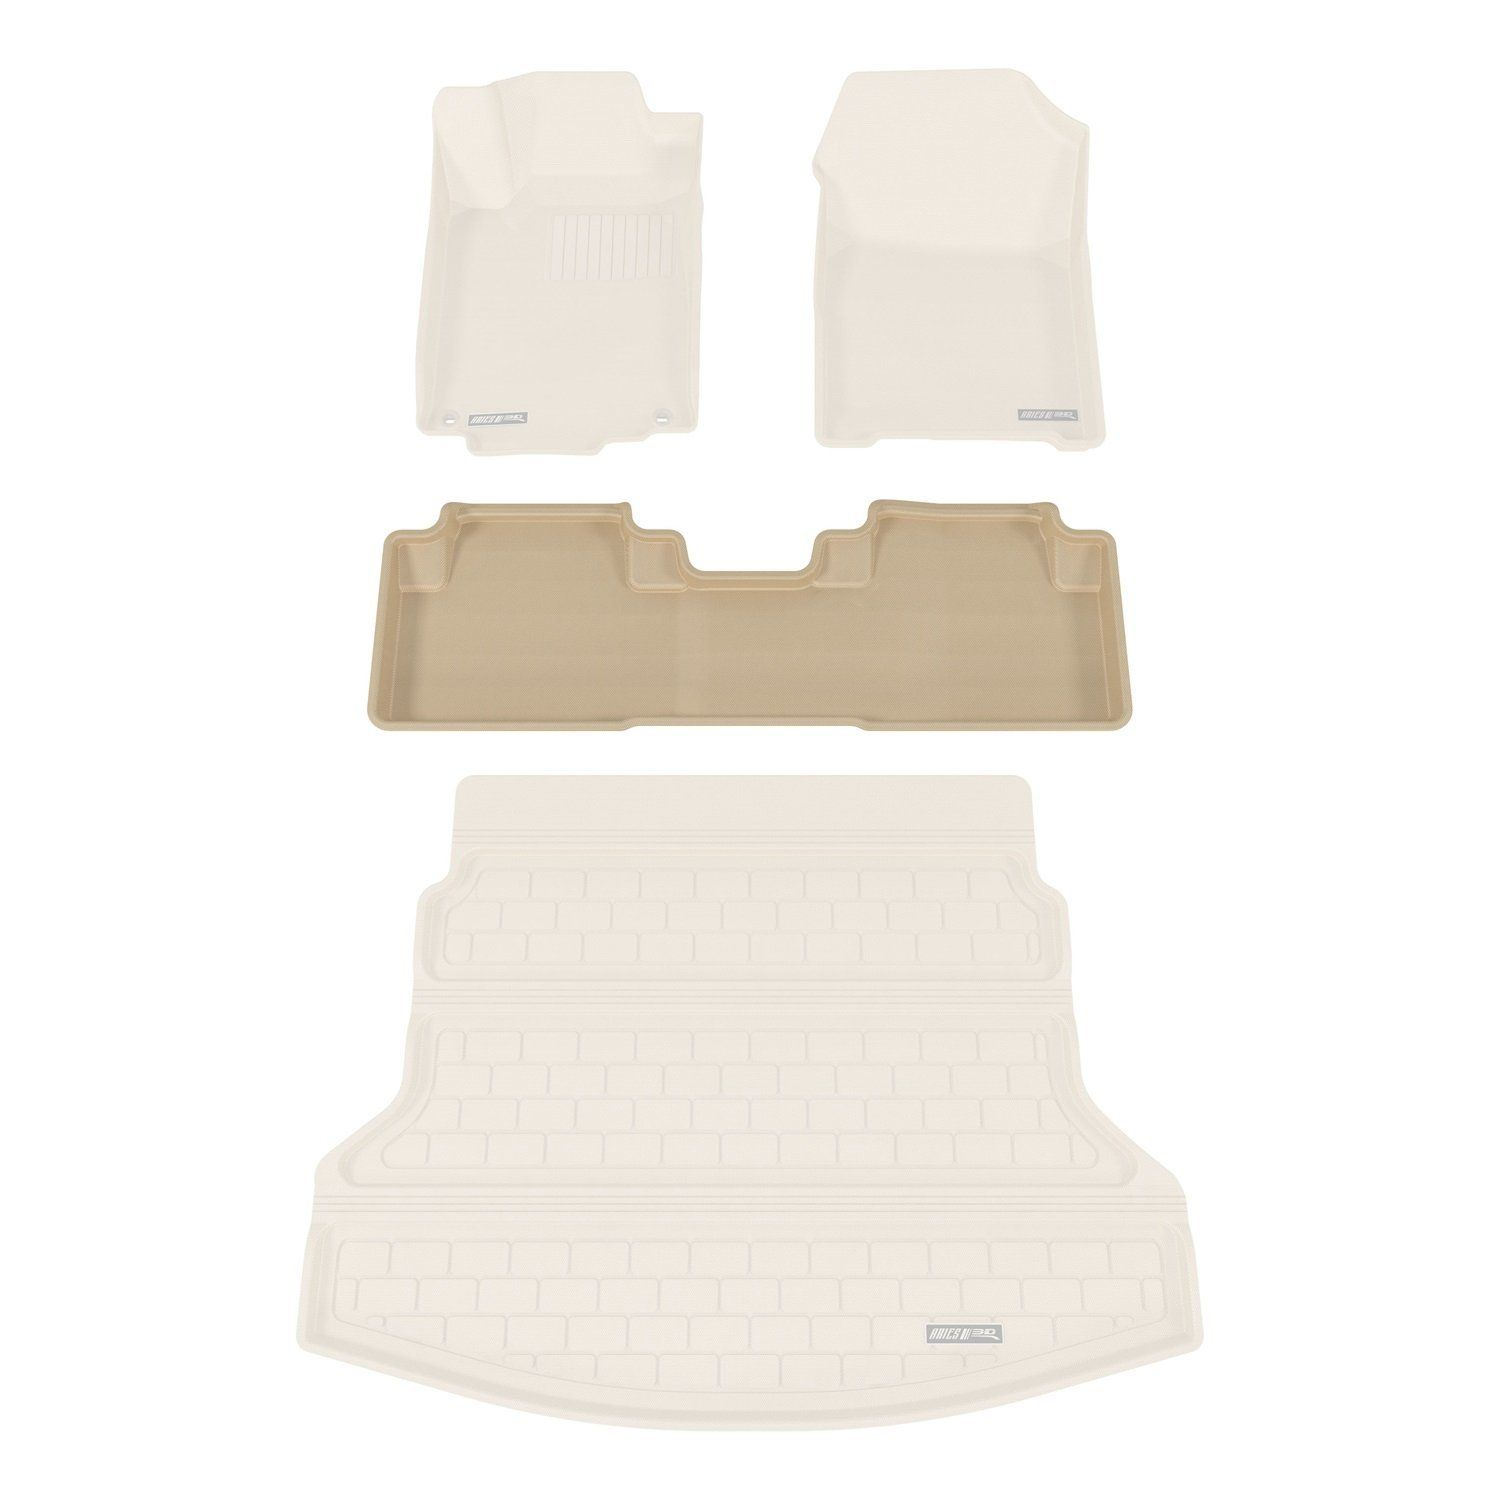 Aries Hd04321502 Tan Rear 3d Floor Liner 1 Piece You Can Find More Details By Visiting The Image Link This Is An Affiliate L Floor Liners Flooring Pieces